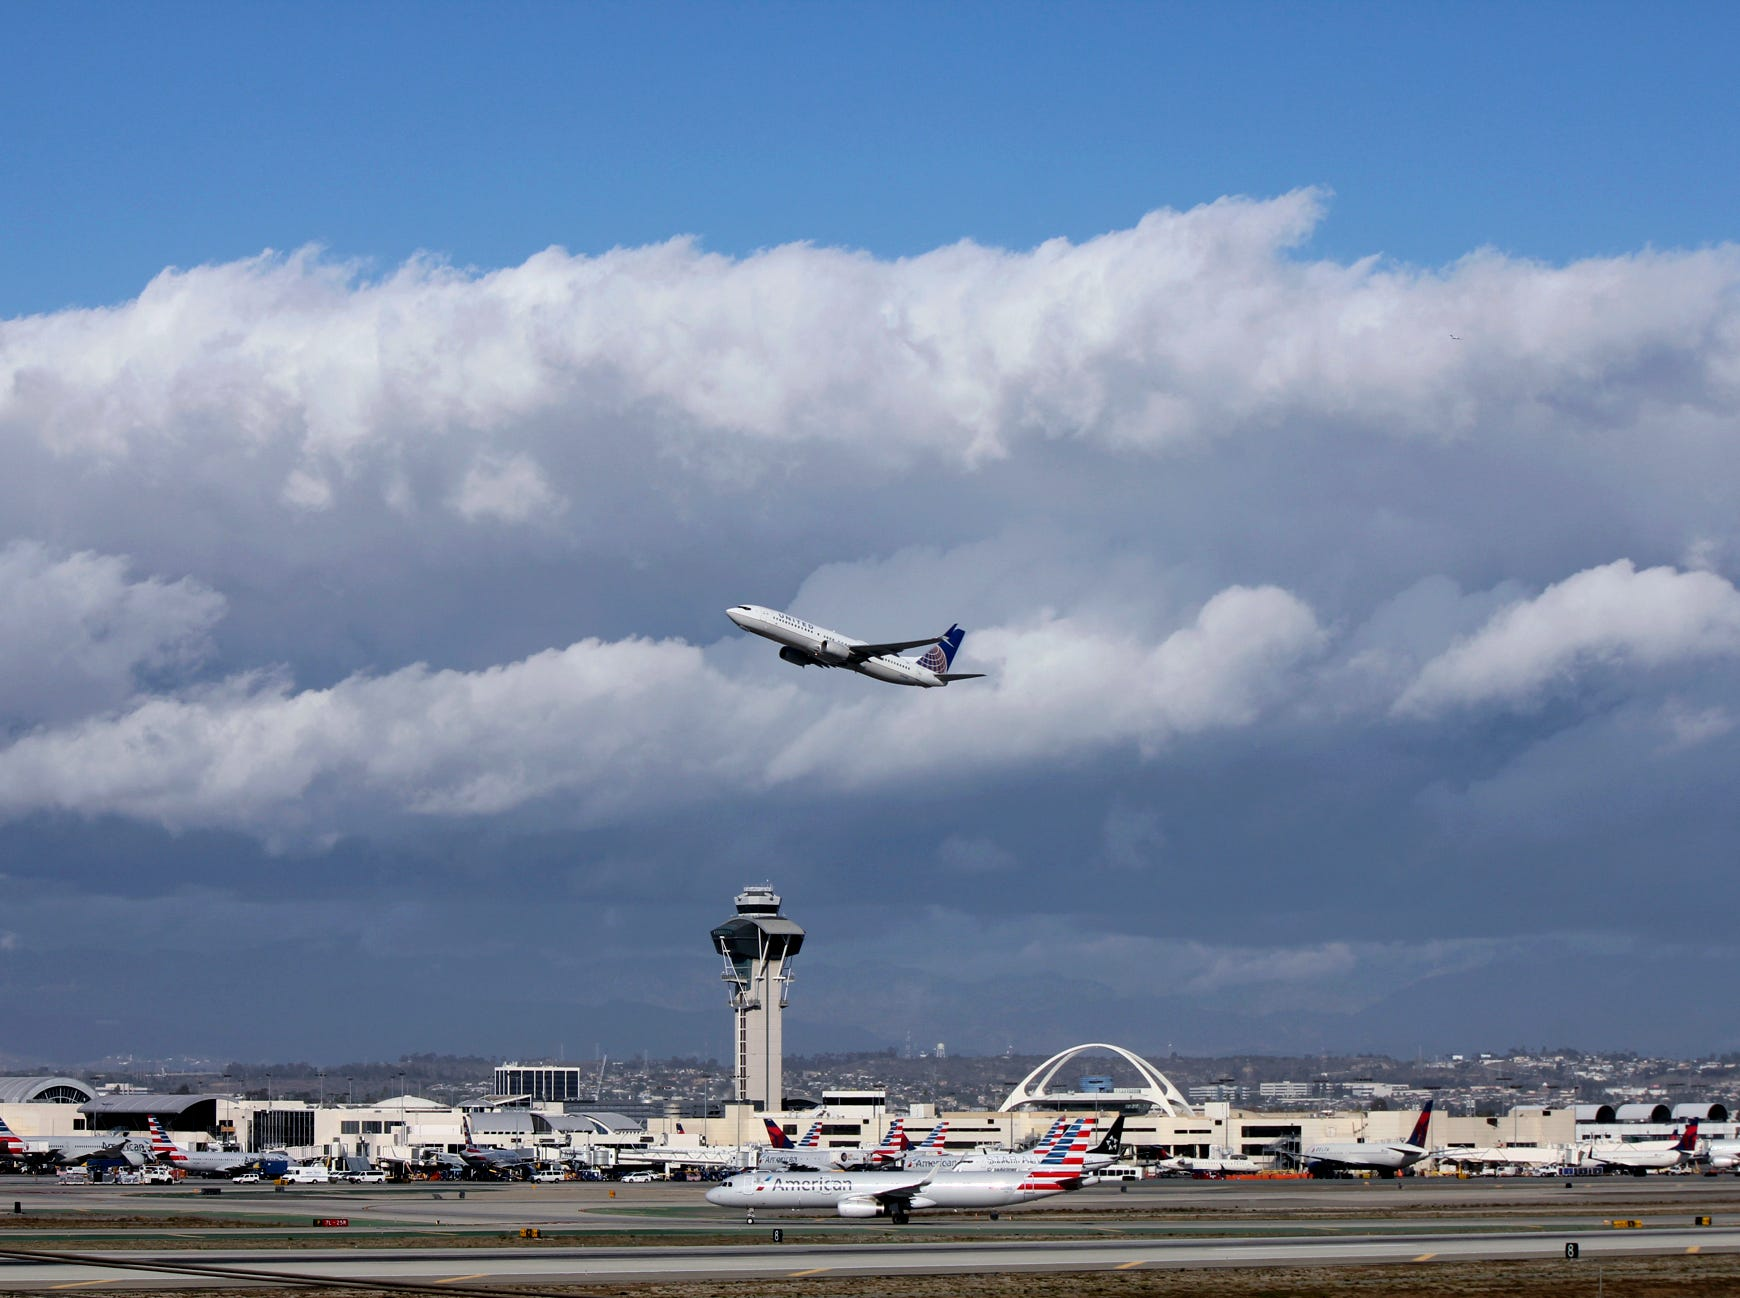 In this file photo, a plane flies over Los Angeles International Airport. The Los Angeles County Department of Public Health is warning travelers that a person with measles was at the airport last month.